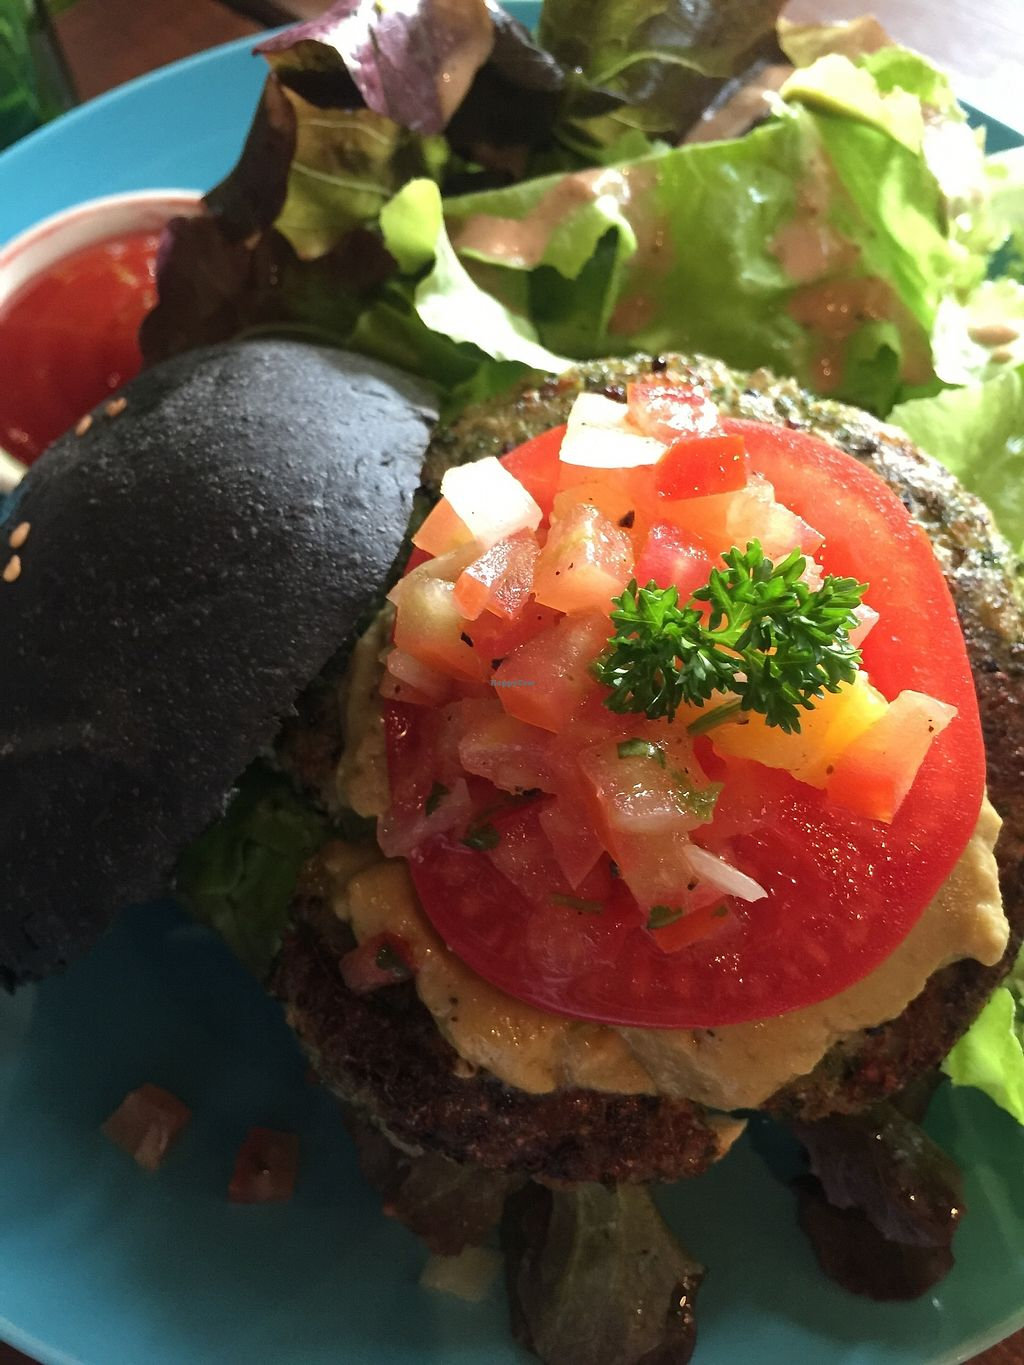 """Photo of Broccoli Revolution - Sukhumvit Rd  by <a href=""""/members/profile/JaqVeganWriter"""">JaqVeganWriter</a> <br/>Broccoli Charcoal Burger <br/> February 16, 2018  - <a href='/contact/abuse/image/64334/359953'>Report</a>"""